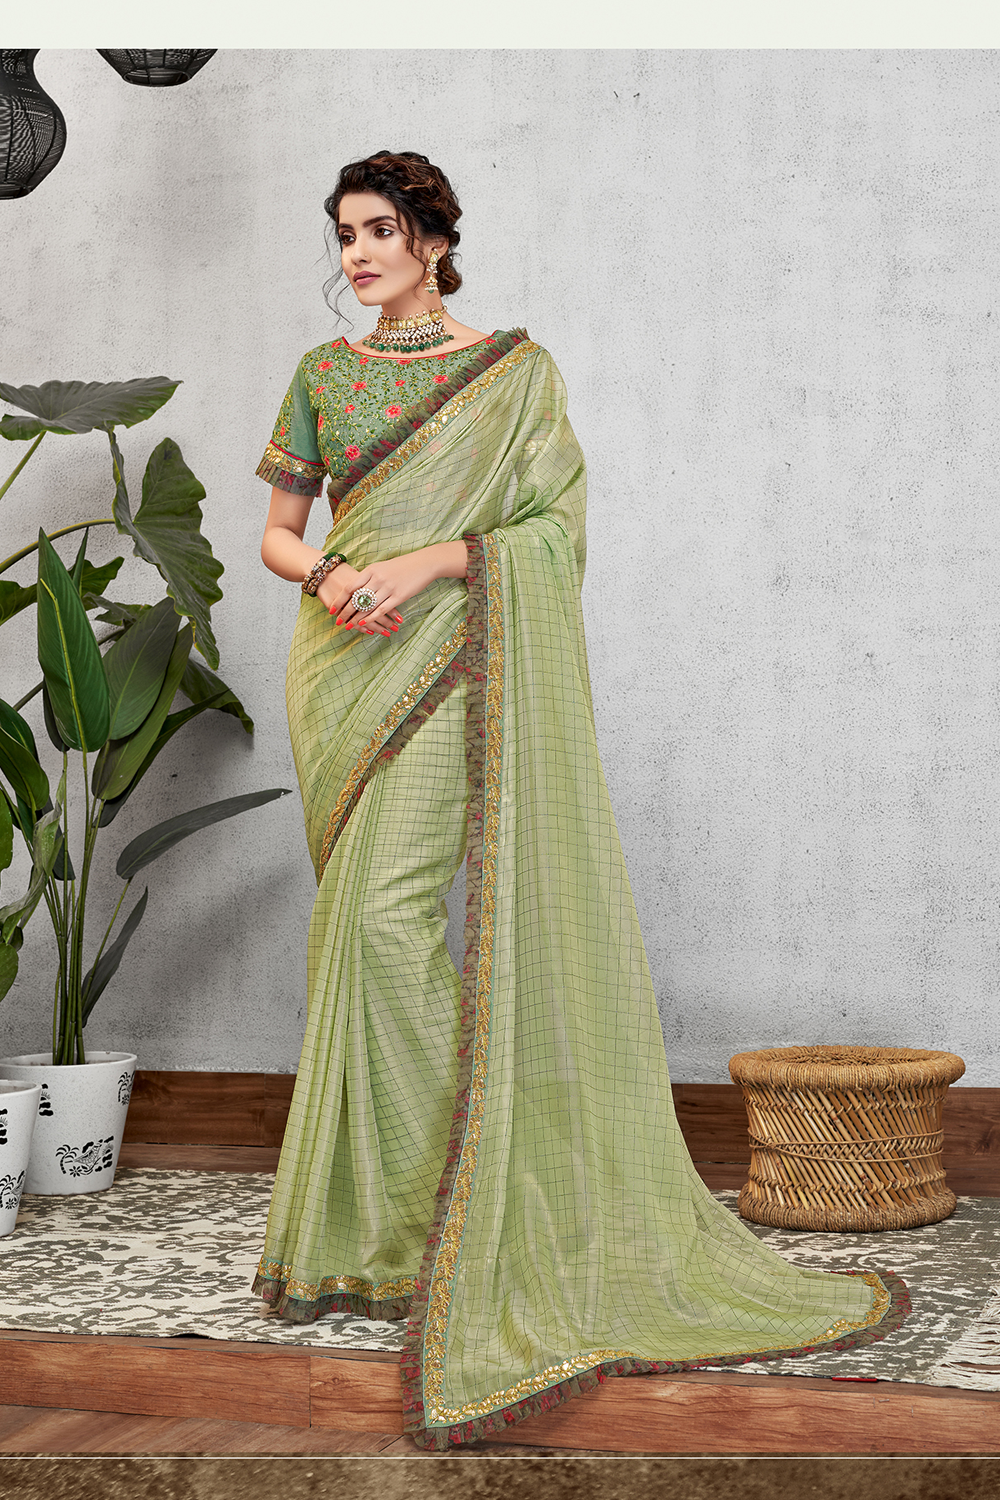 Combining fresh and summery hues with classical embrodieries